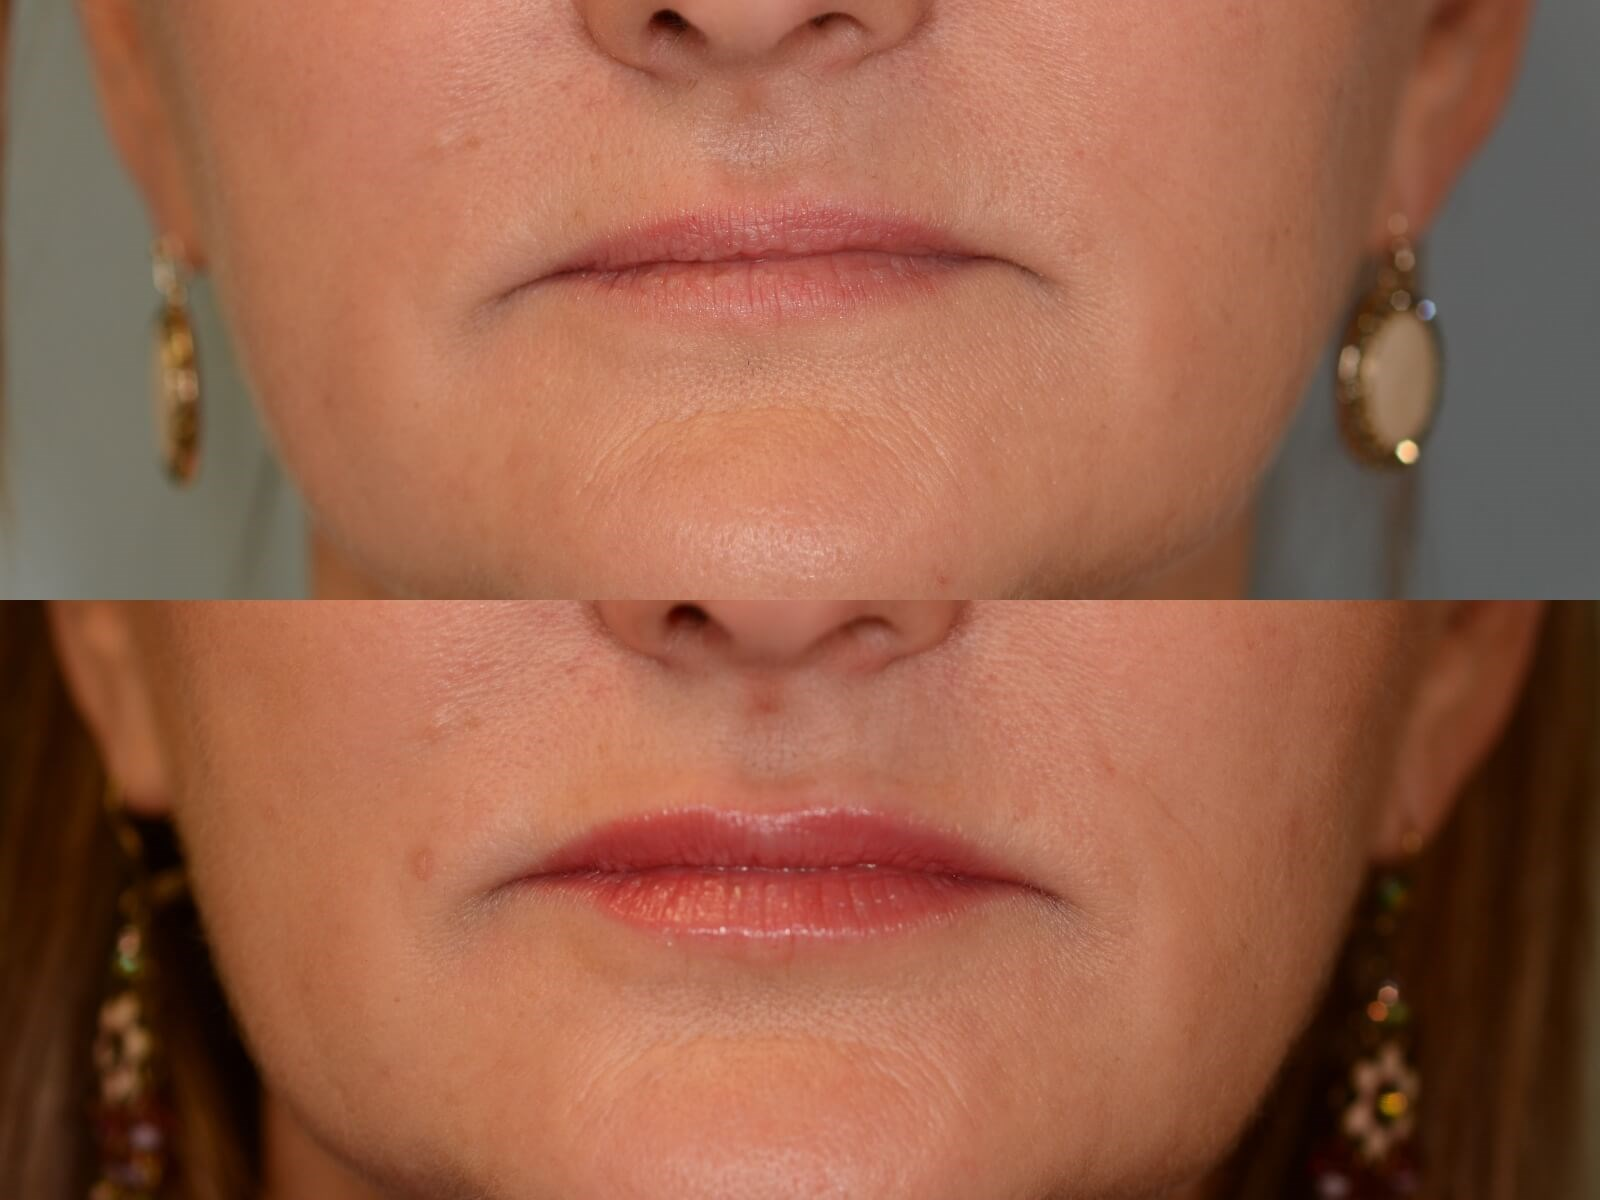 Fillers Rejuvenate the face Before and After